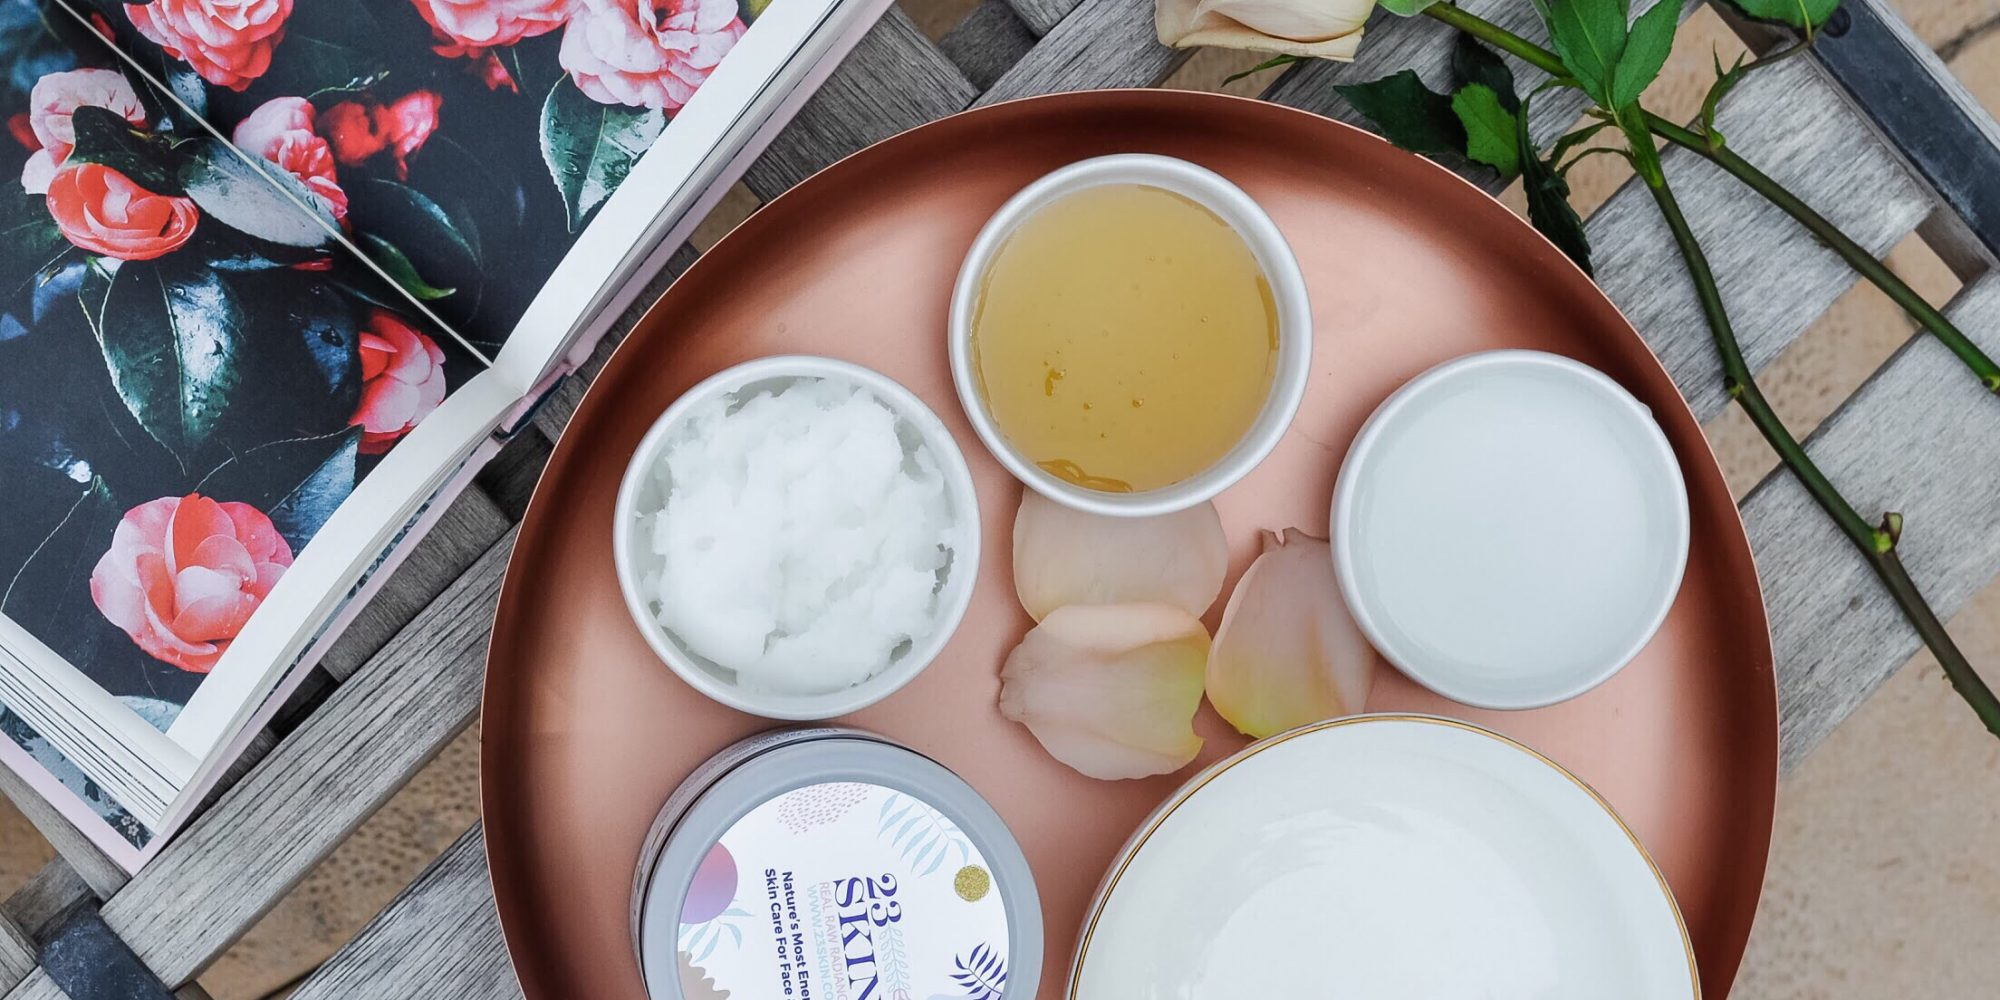 Shiri Sarfati Follows In Her Mother And Repêchage Founder Lydia Sarfati's Footsteps With The Creation Of DIY Skincare Brand 23Skin